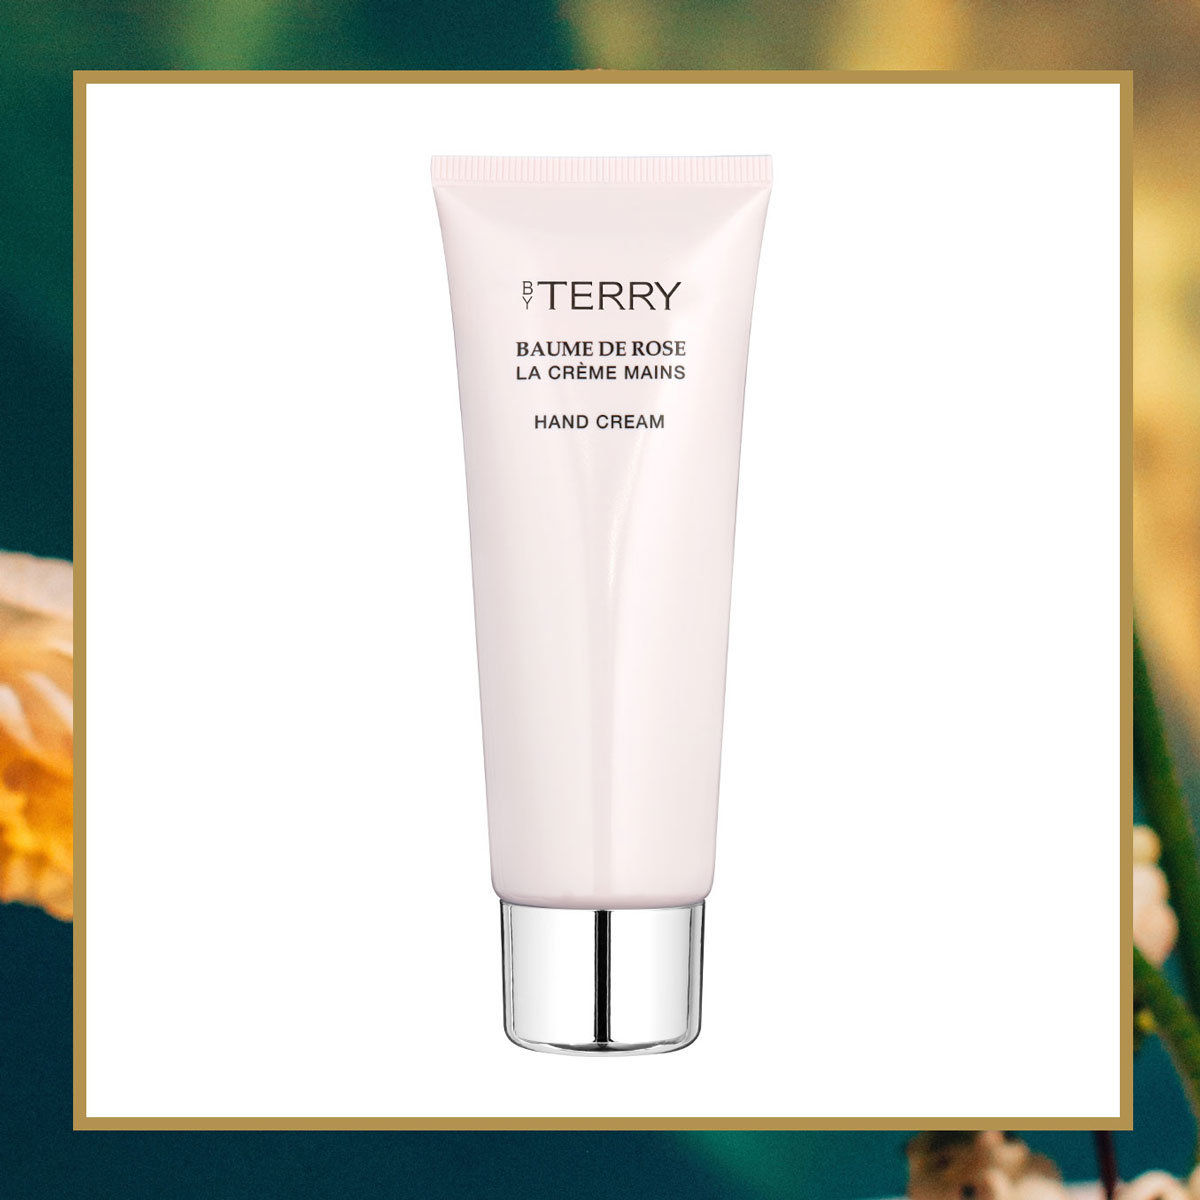 Spend {promo_threshold}+, receive a mini BY TERRY Baume de Rose Hand Cream